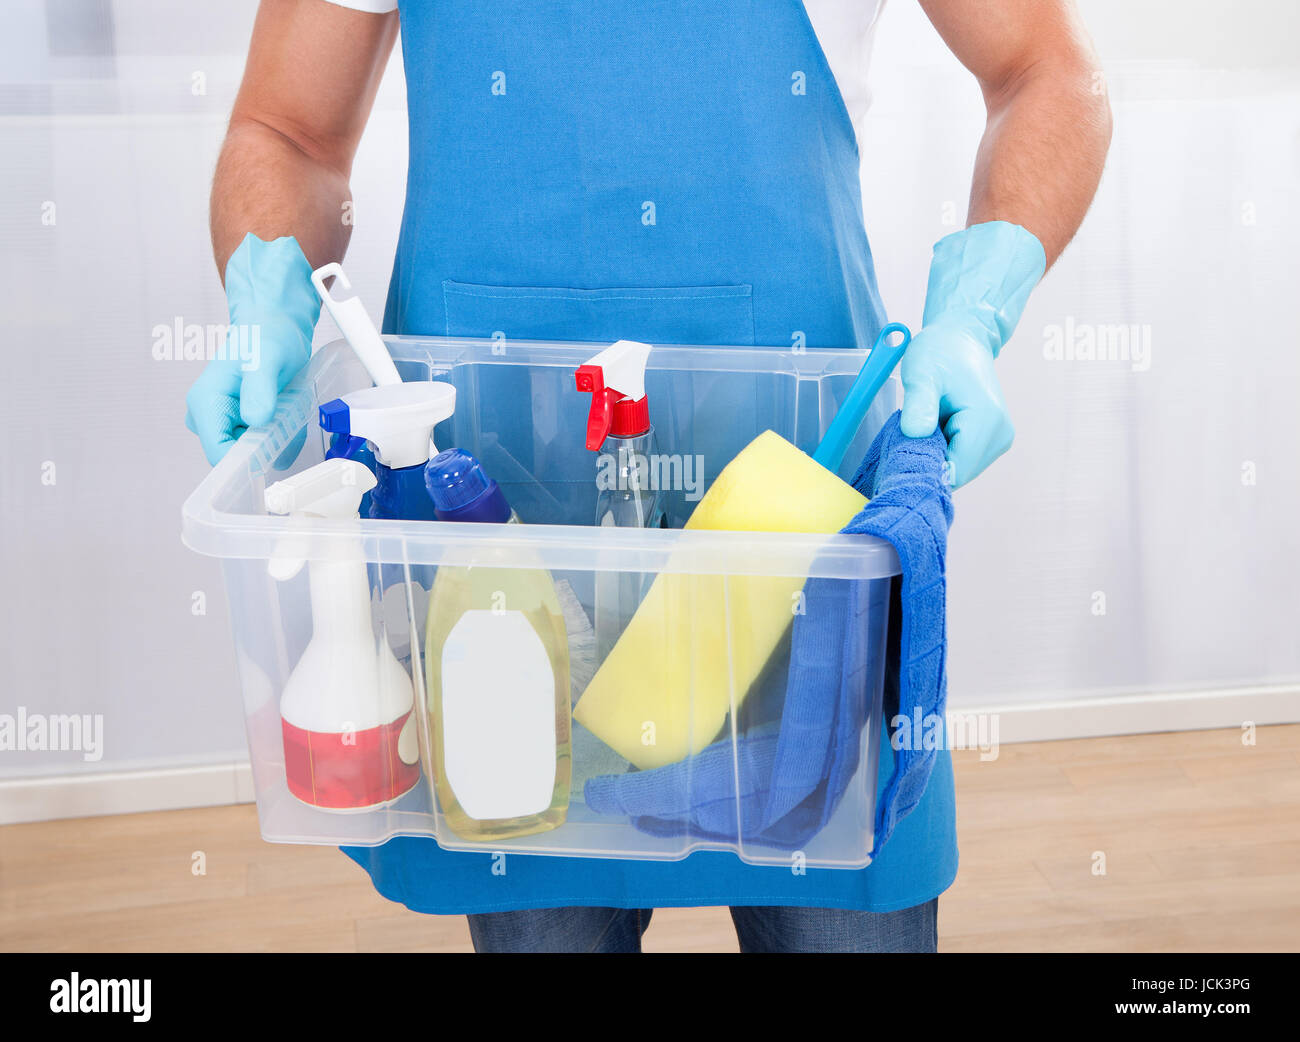 Janitor or cleaner wearing an apron and gloves carrying a tub of ...